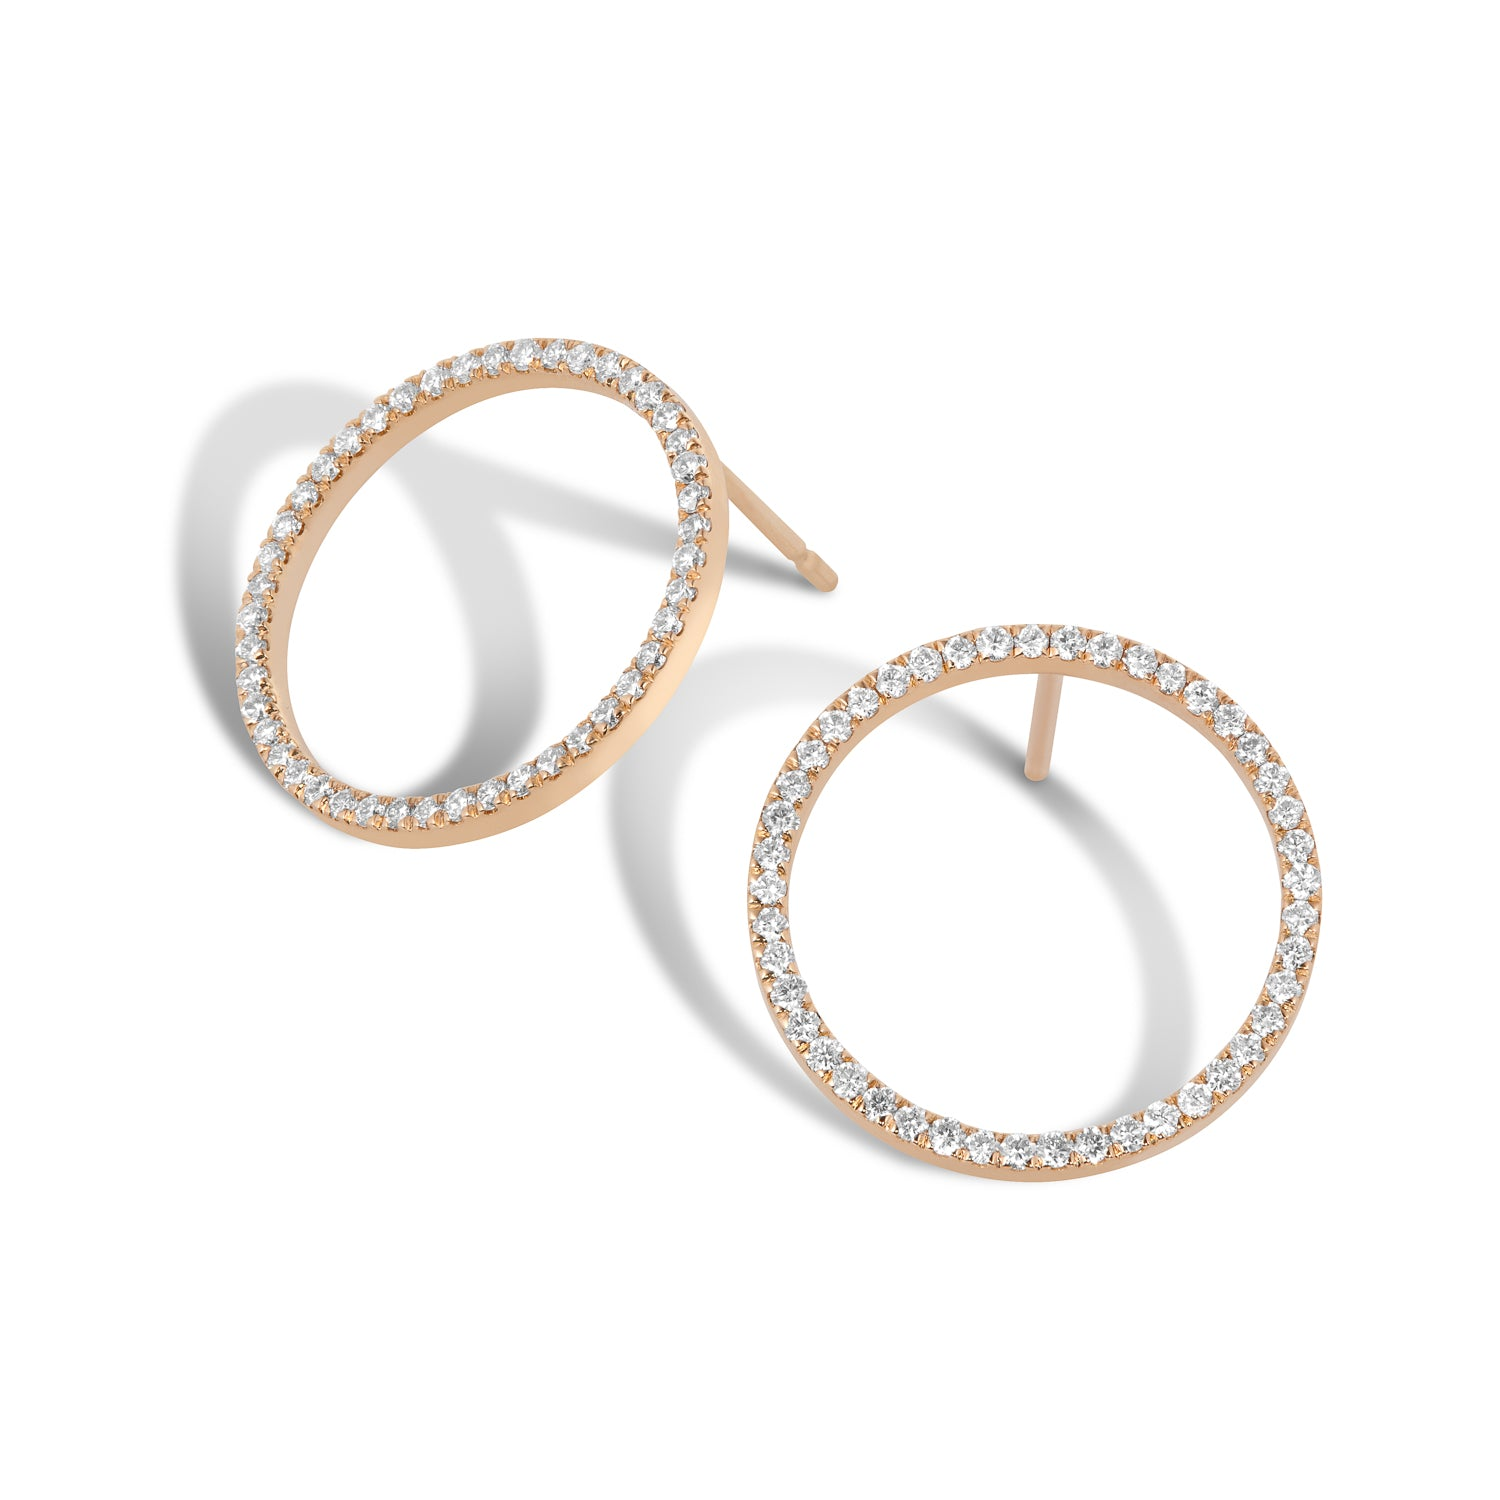 pearls hoop women stud double fashion pin earrings gold jewelry for hotshopping by girls